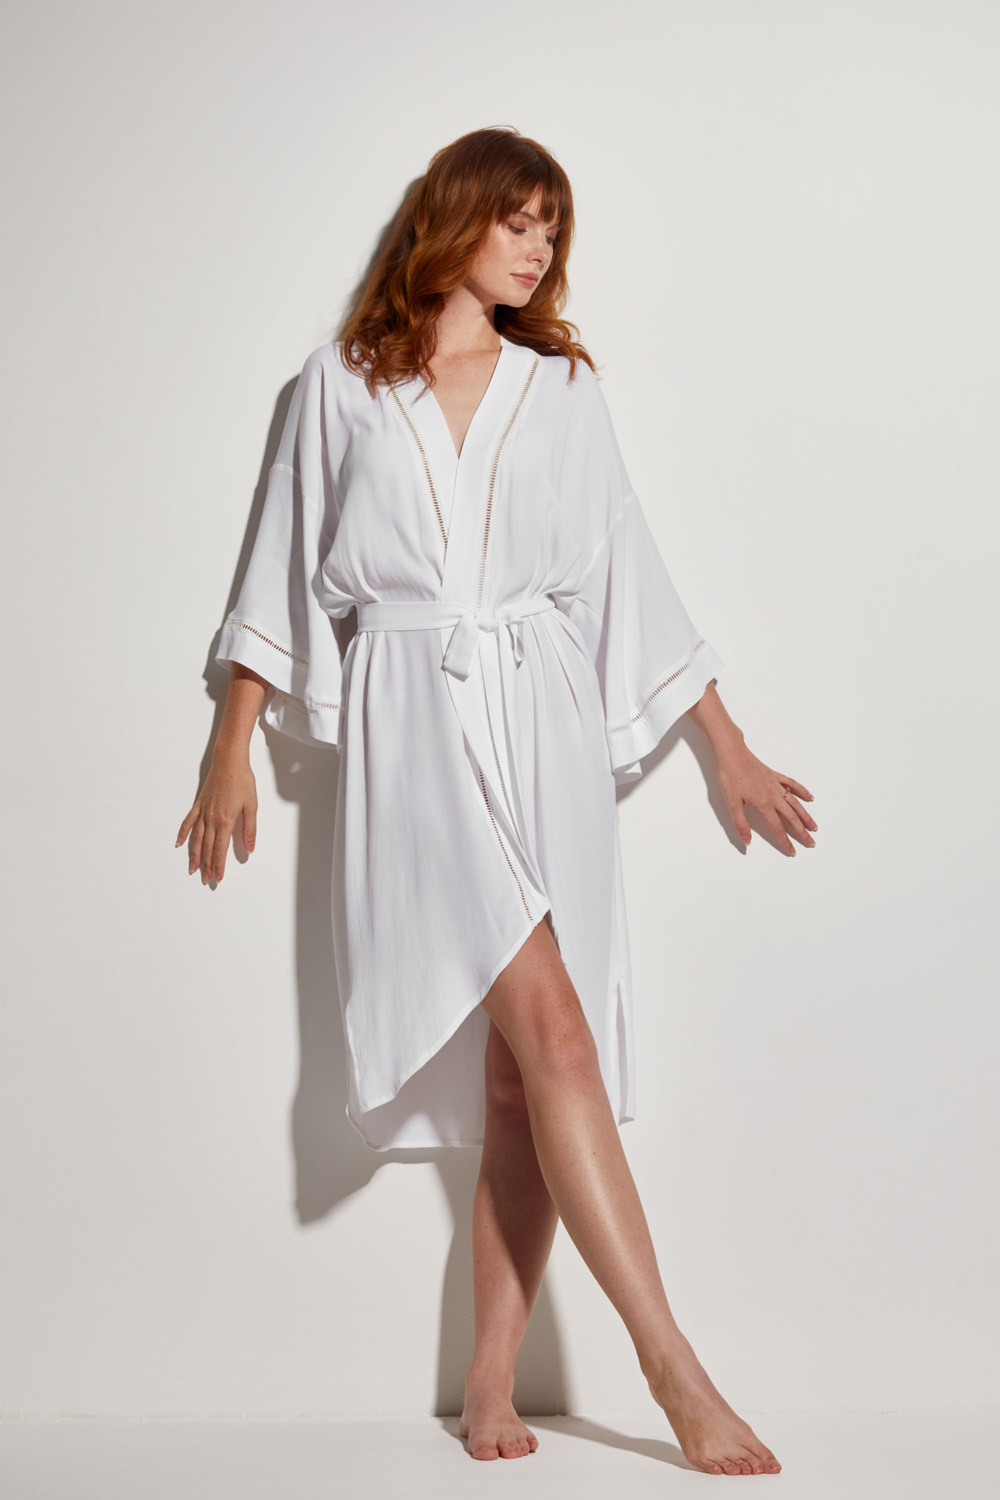 Luxe Robe - Purchase any 2 piece set from any season and receive the Luxe Robe to keep in your change room for brides as a gift from us.   Minimum order of 2 per wholesale purchases.